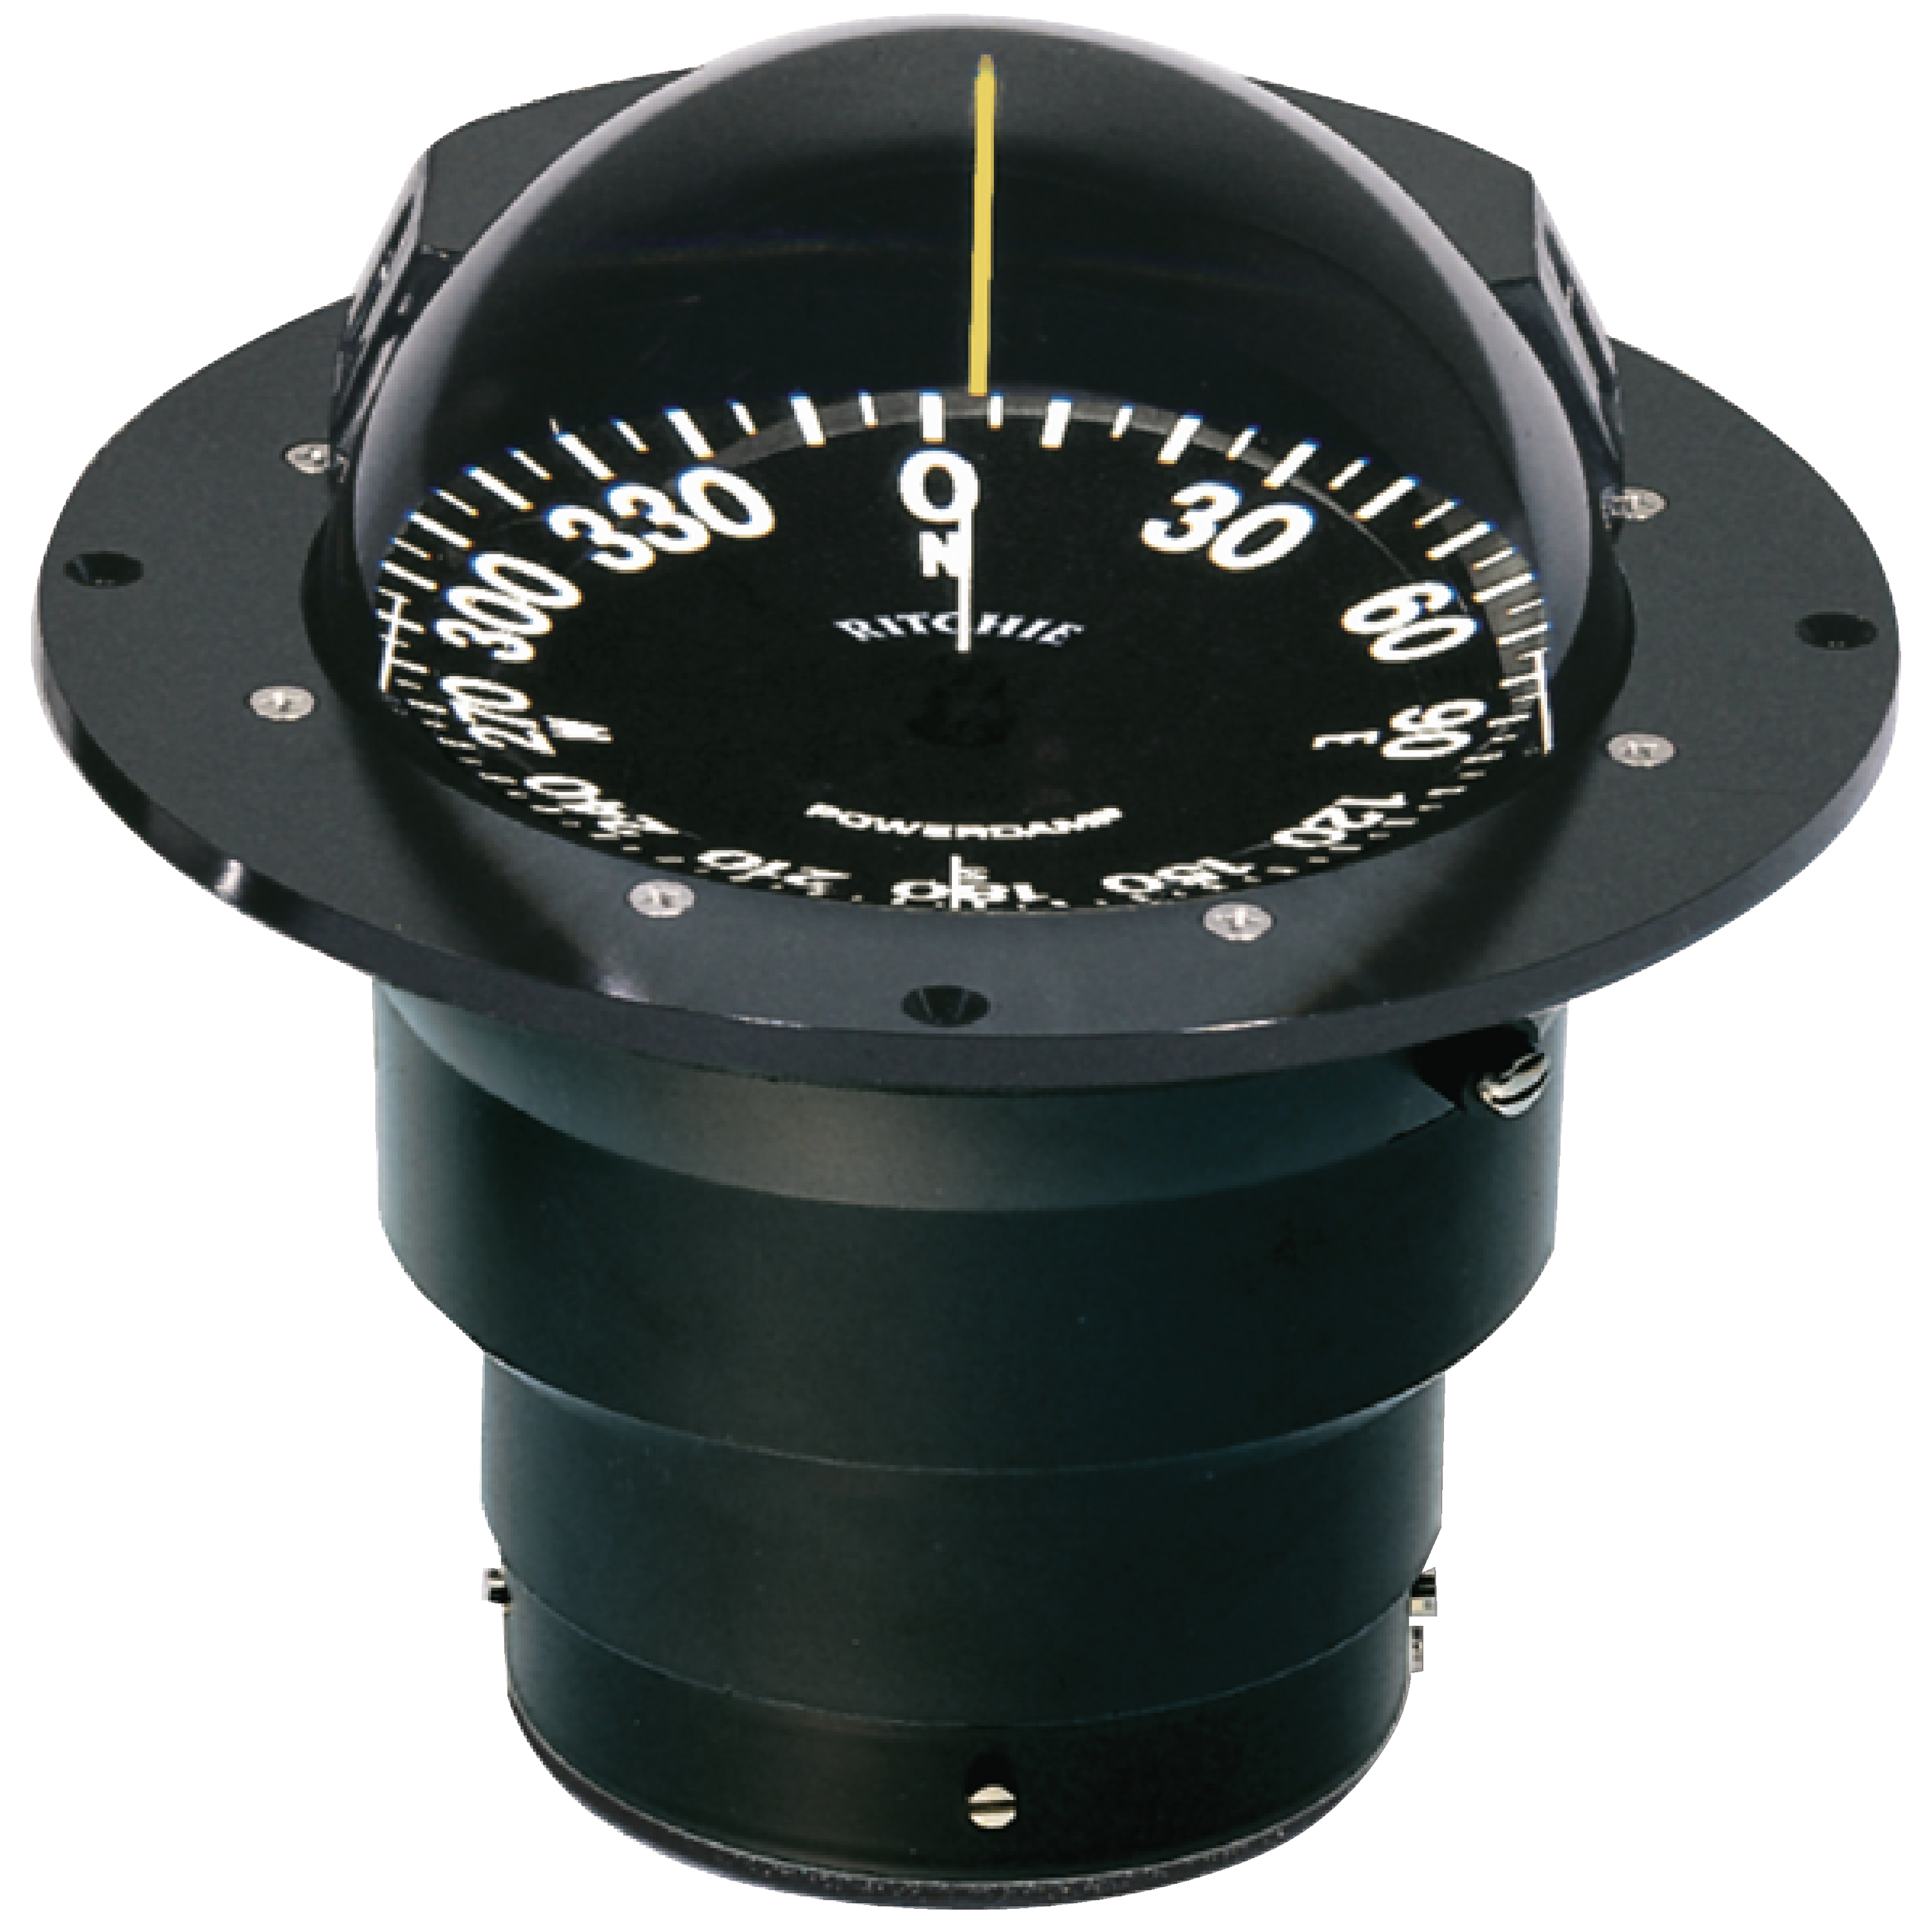 Ritchie FB500 Globemaster Black Boat Compass with Green Light & Flush Mount by E.S. Ritchie & Sons Inc.